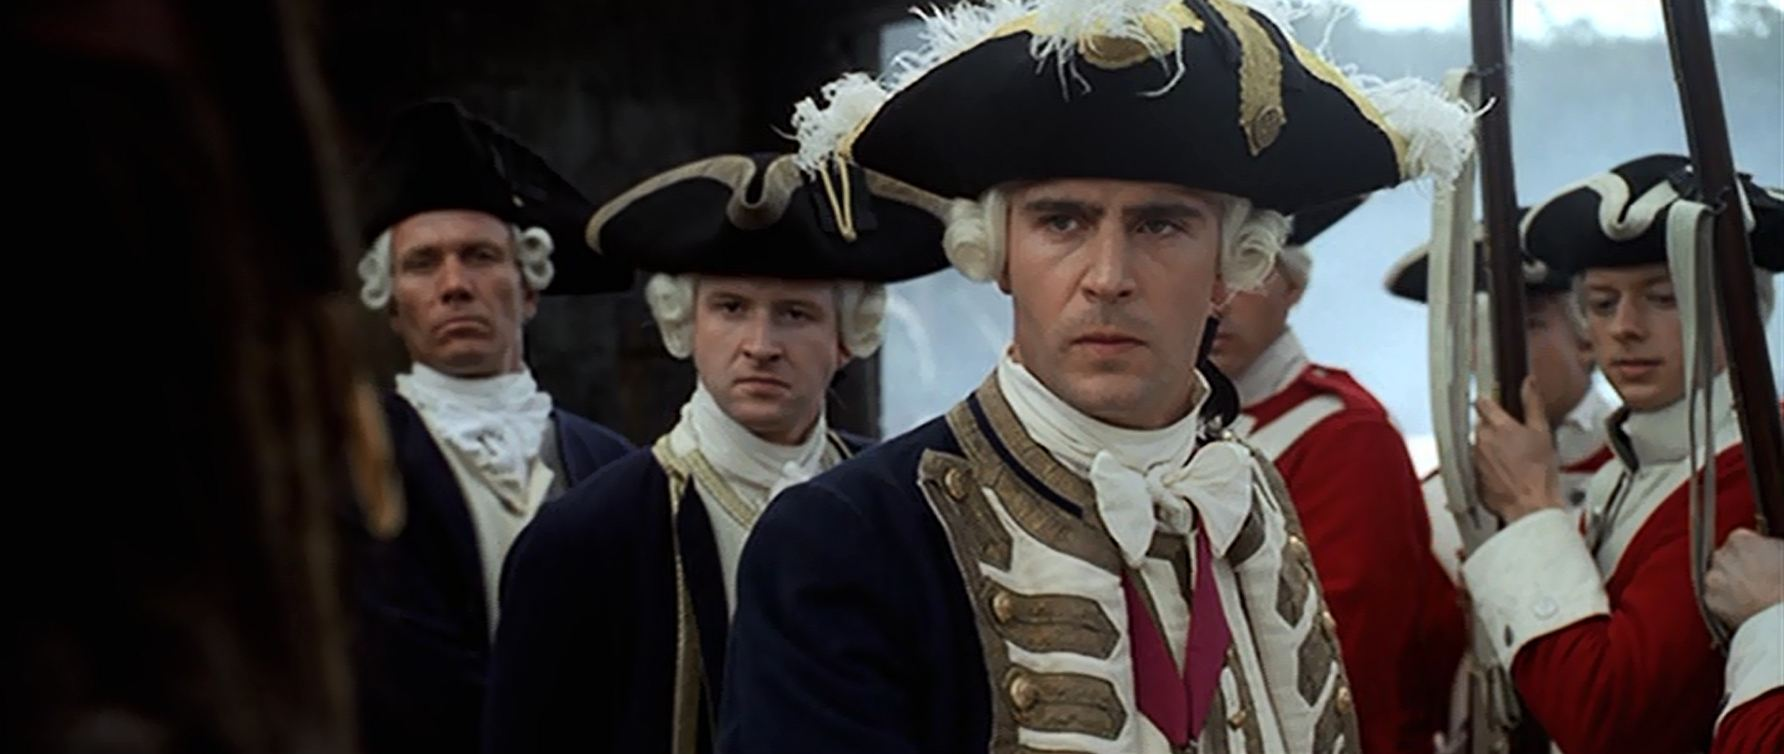 who played the commodore in pirates of the caribbean